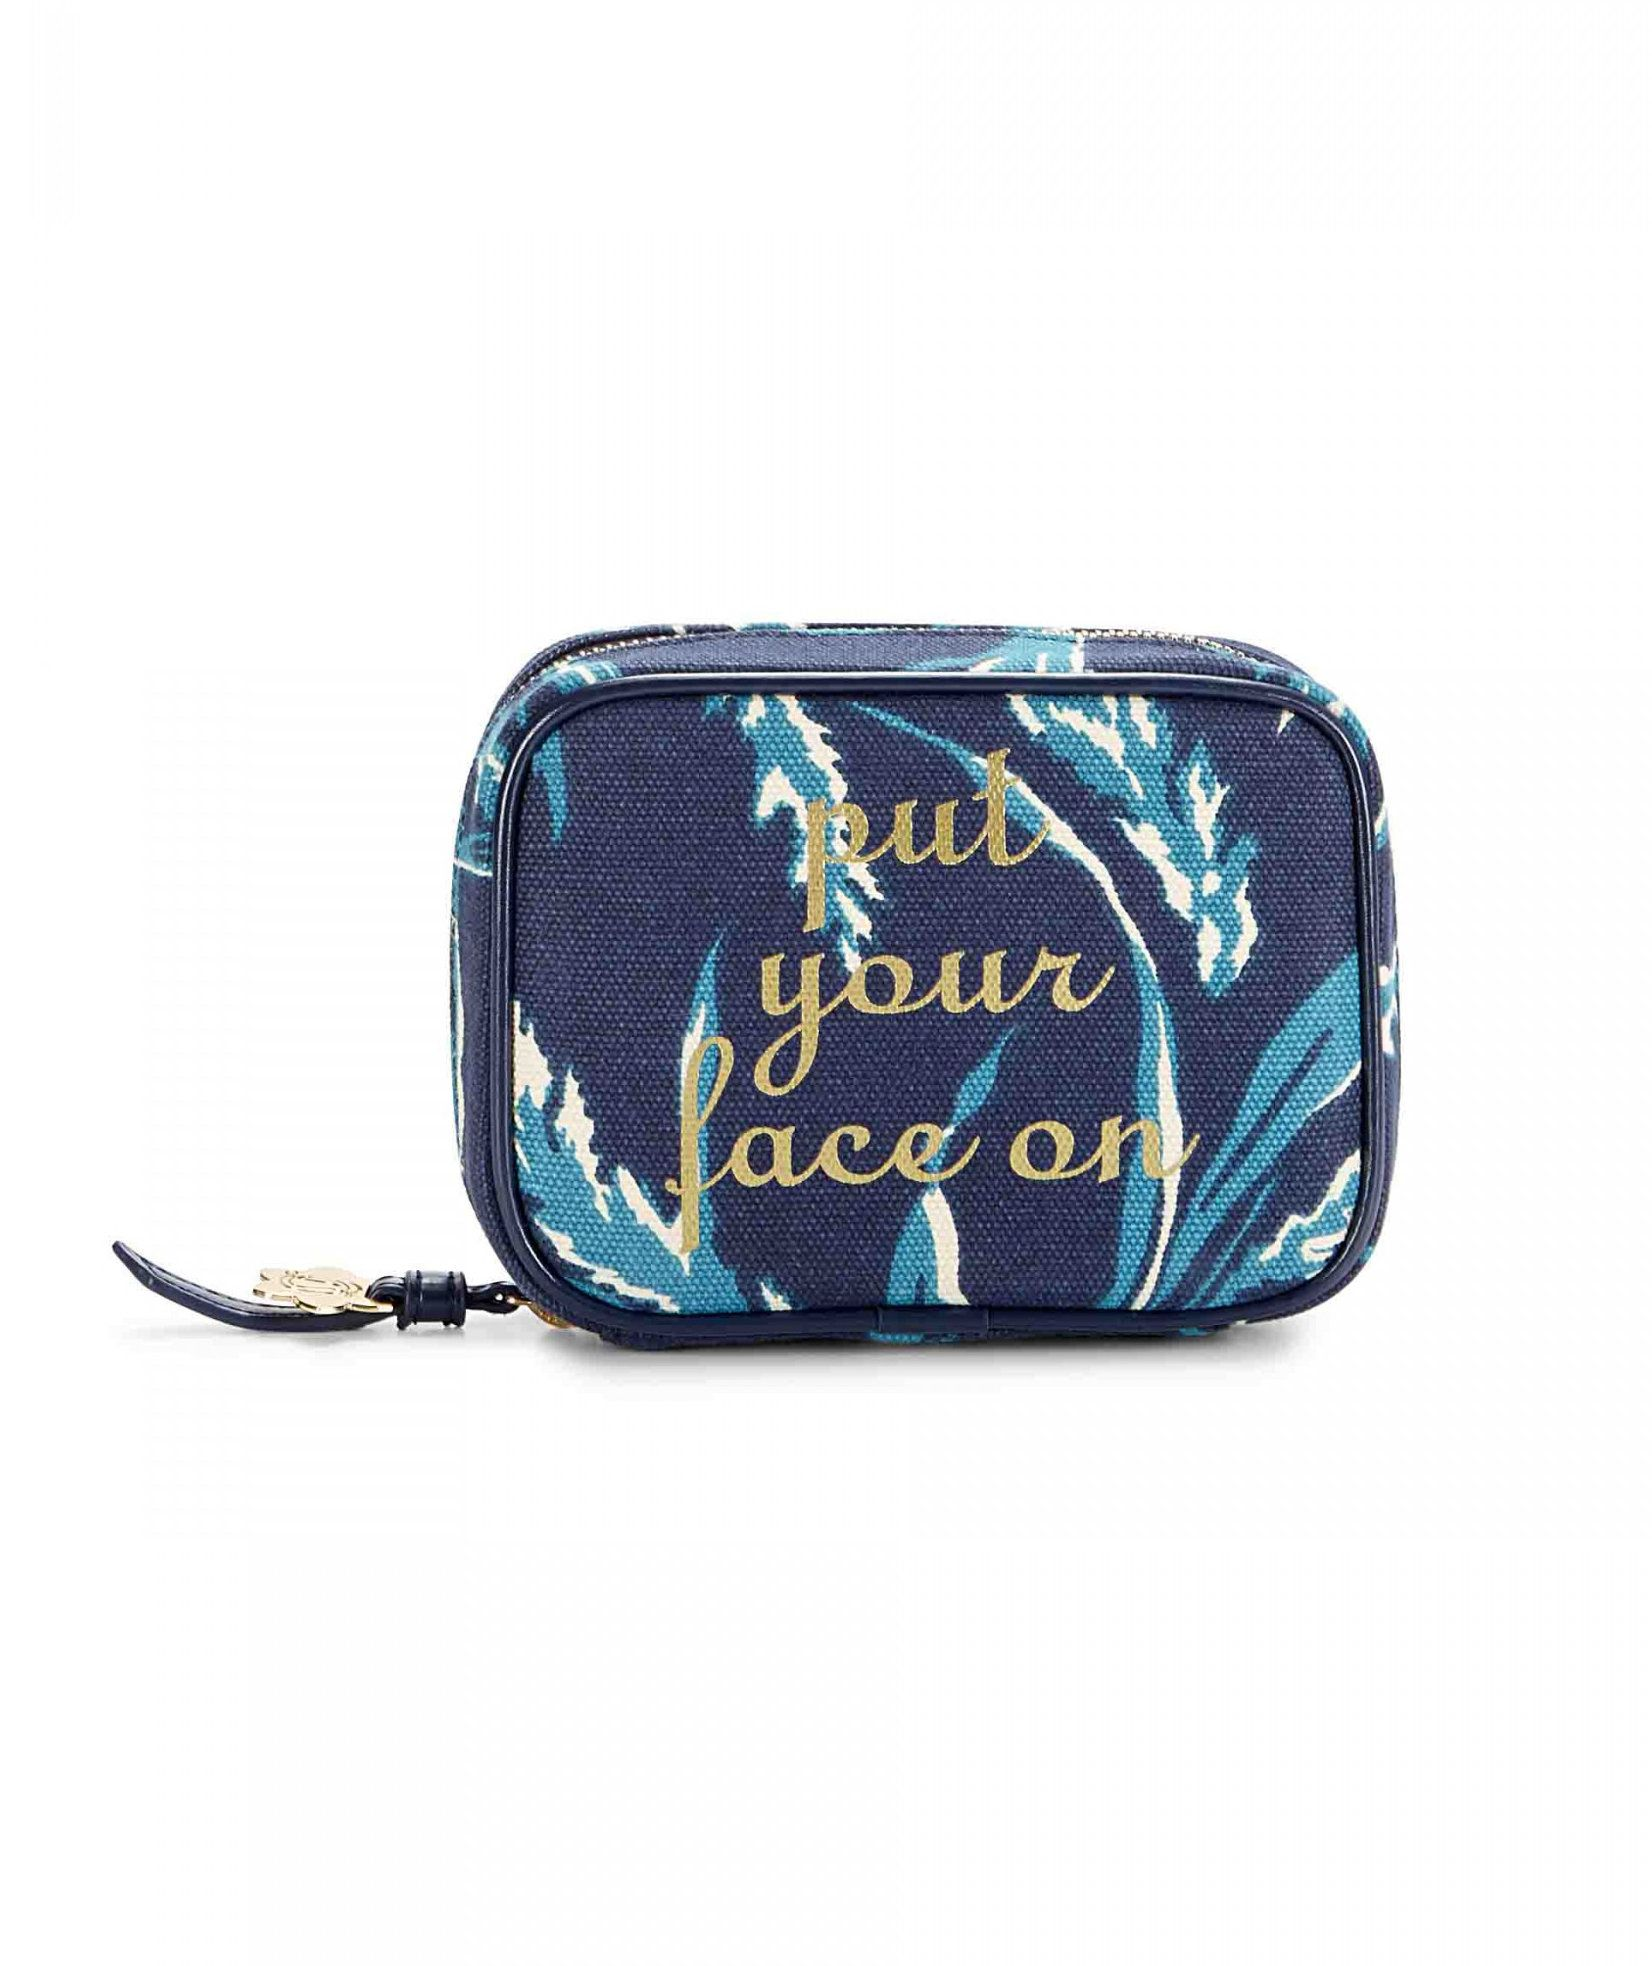 Gifts for Girlfriends That Take the Stress Out of Shopping ...